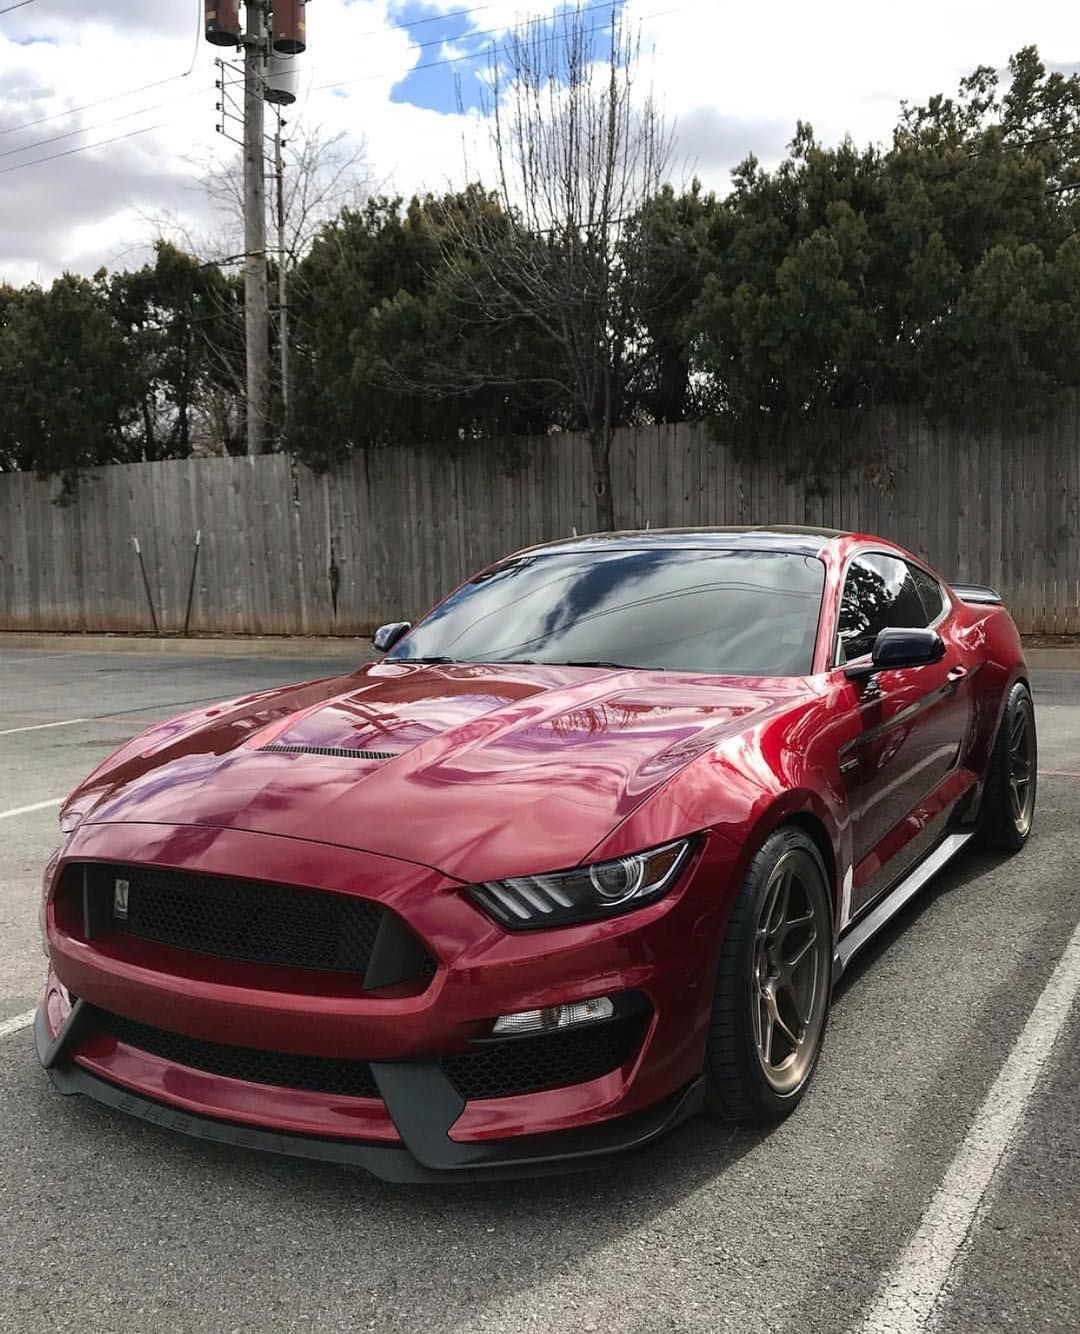 Ruby Red Rate This 1 10 Follow Socialmustang For More Mustangs